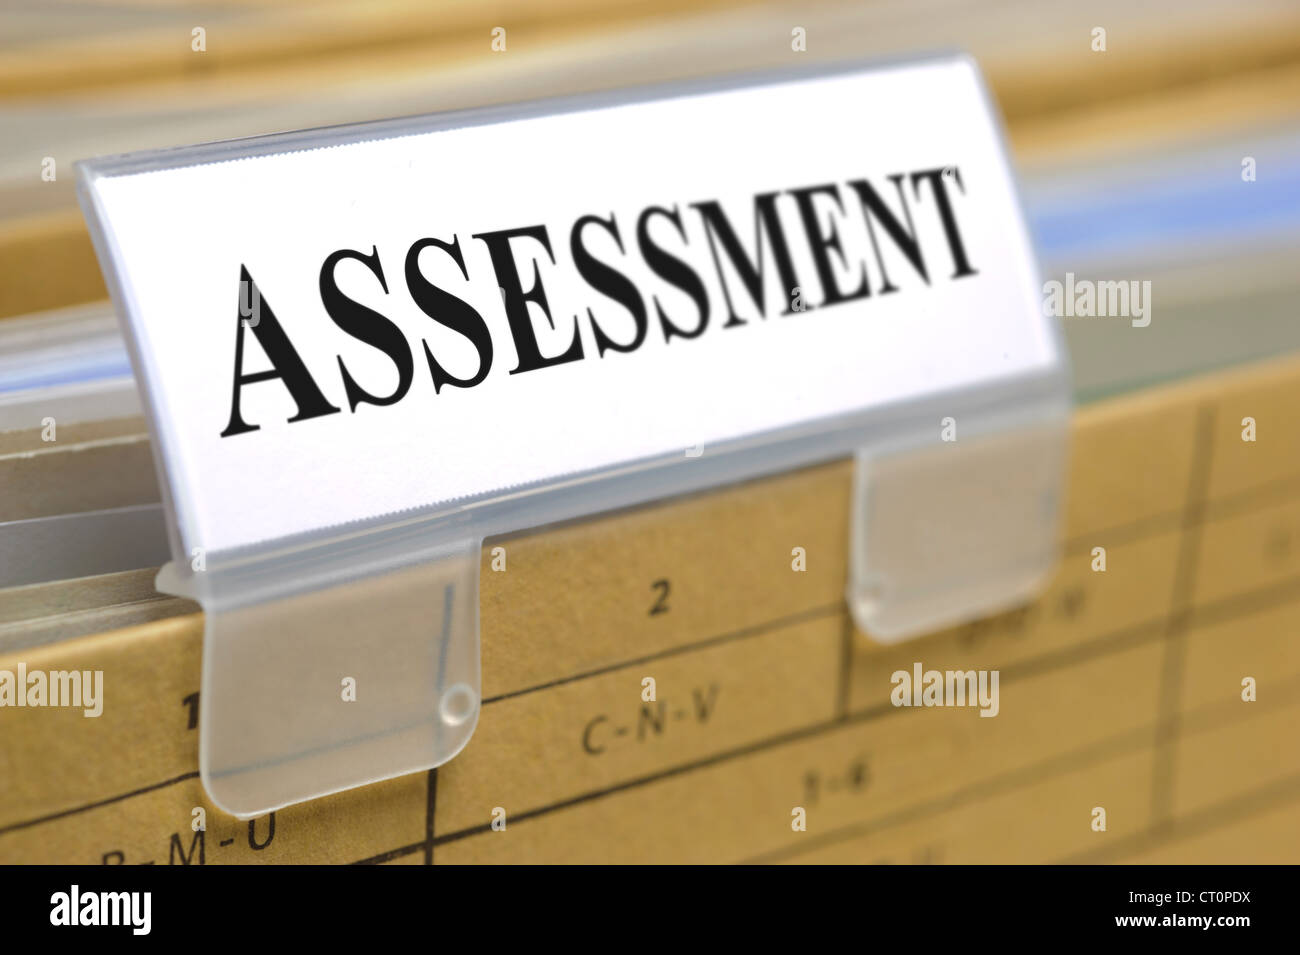 file folder marked with assessment - Stock Image